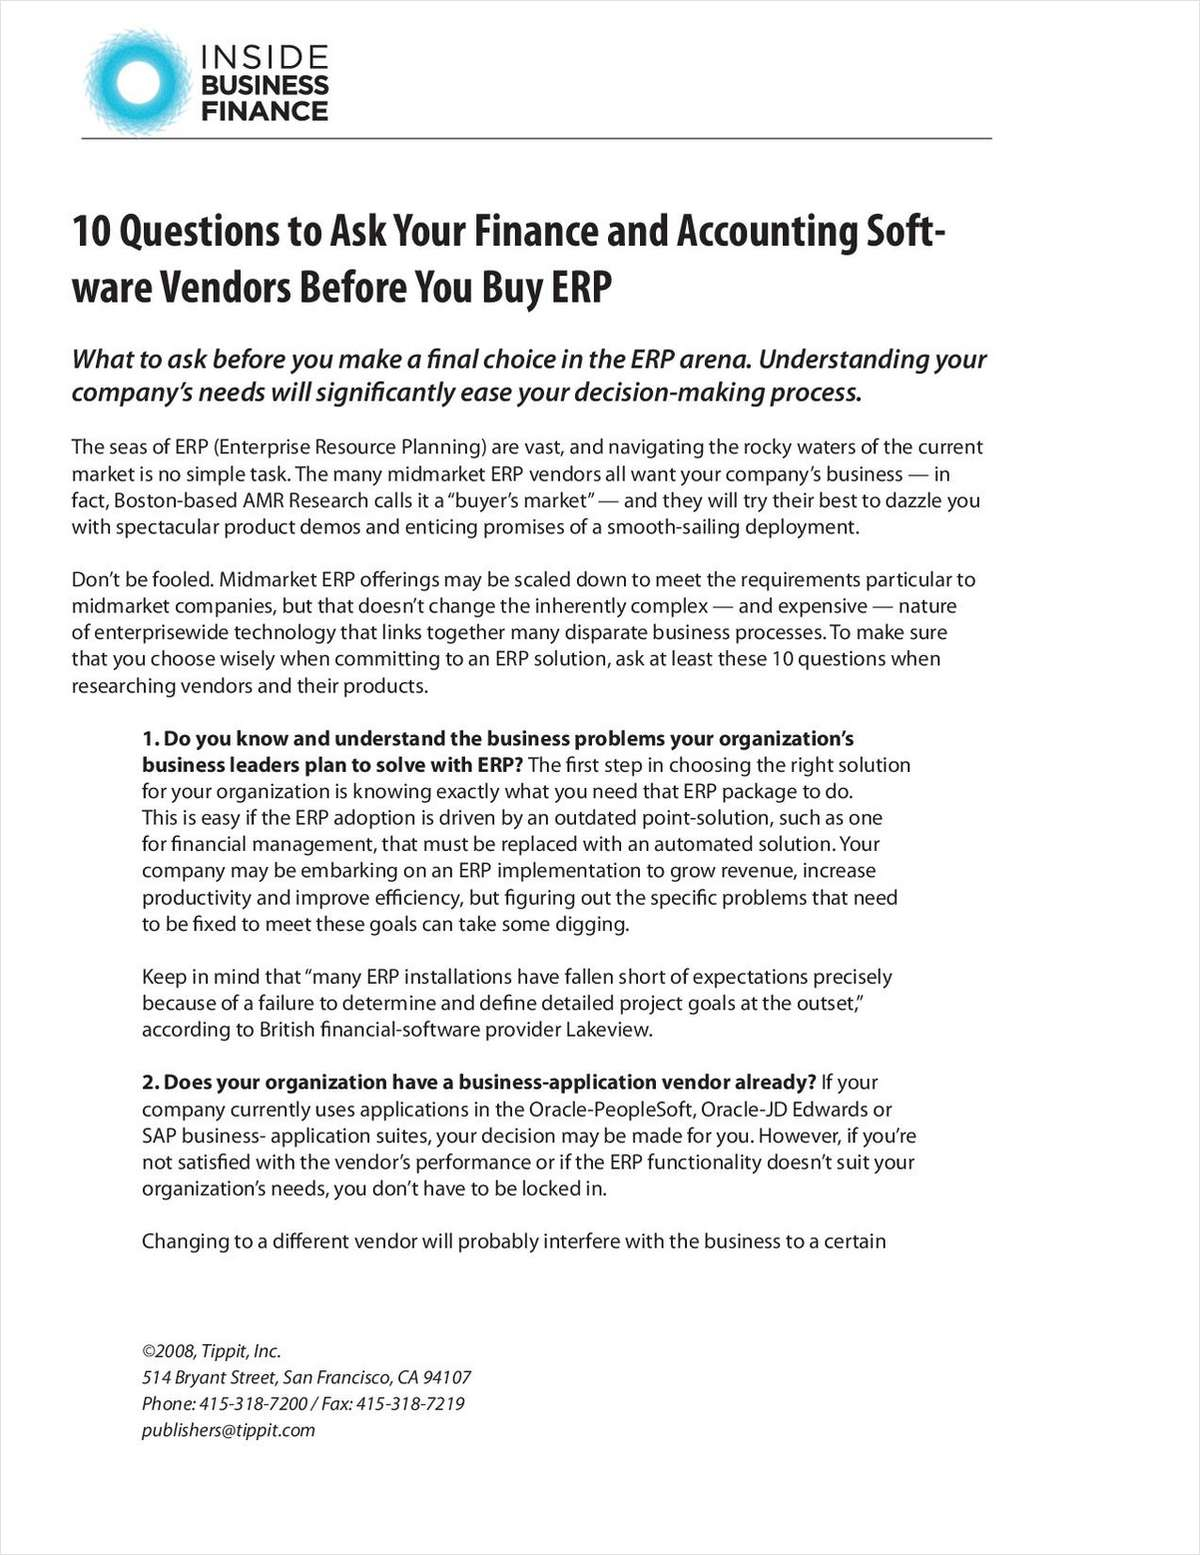 10 Questions to Ask Your Finance and Accounting Software Vendors Before You Buy ERP